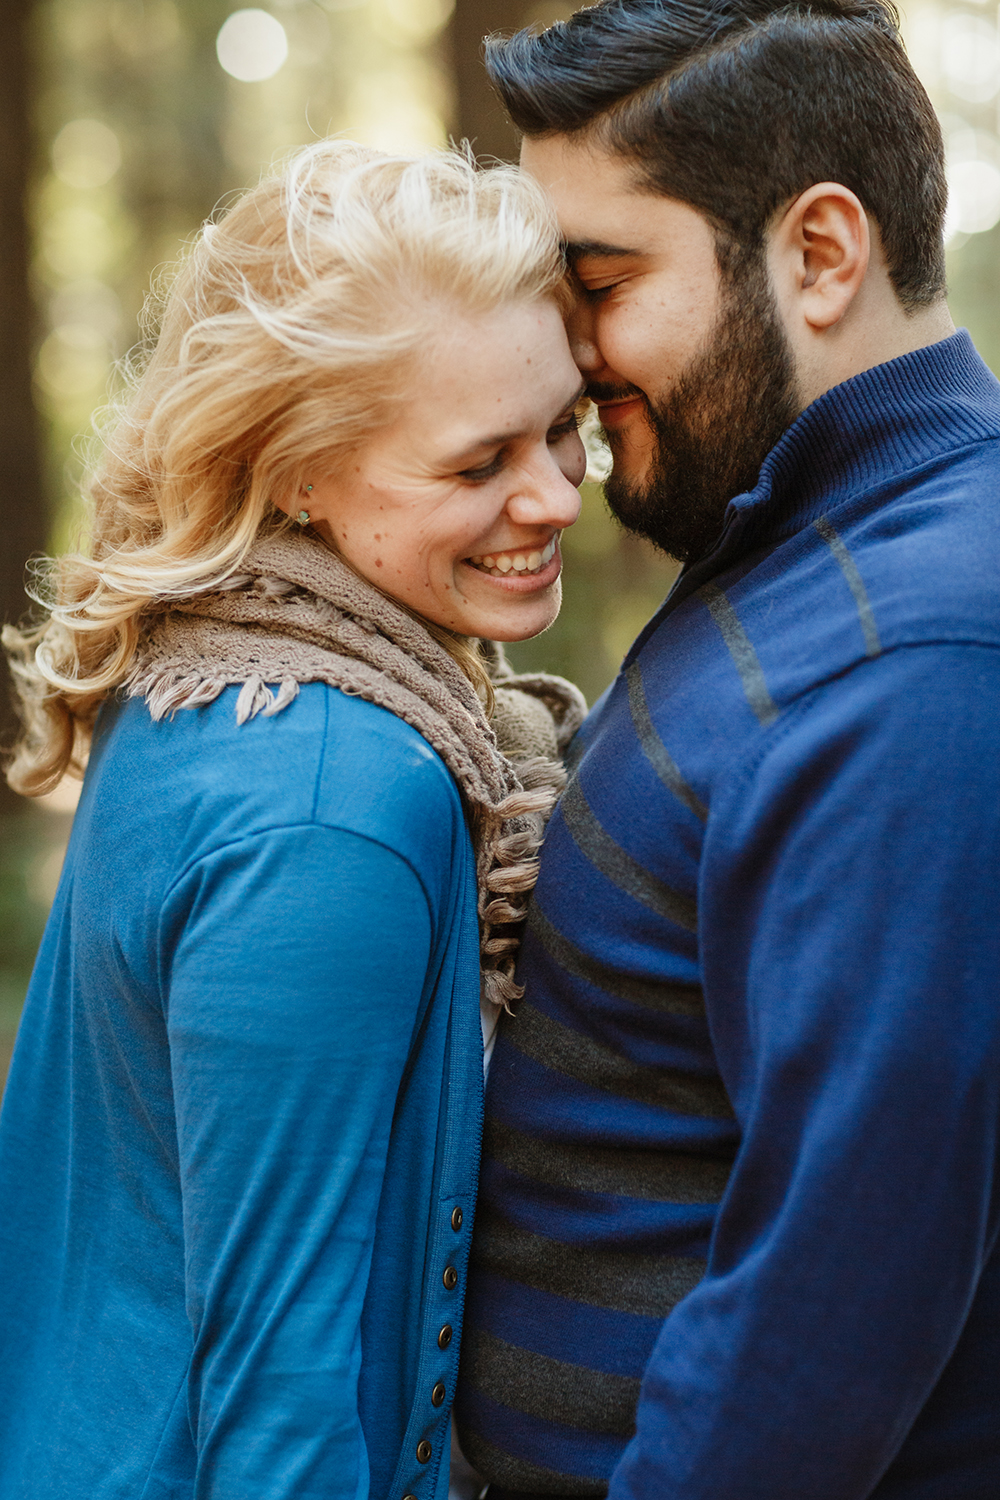 oakland-redwood-regional-engagement-session-james-stephaine-23.html